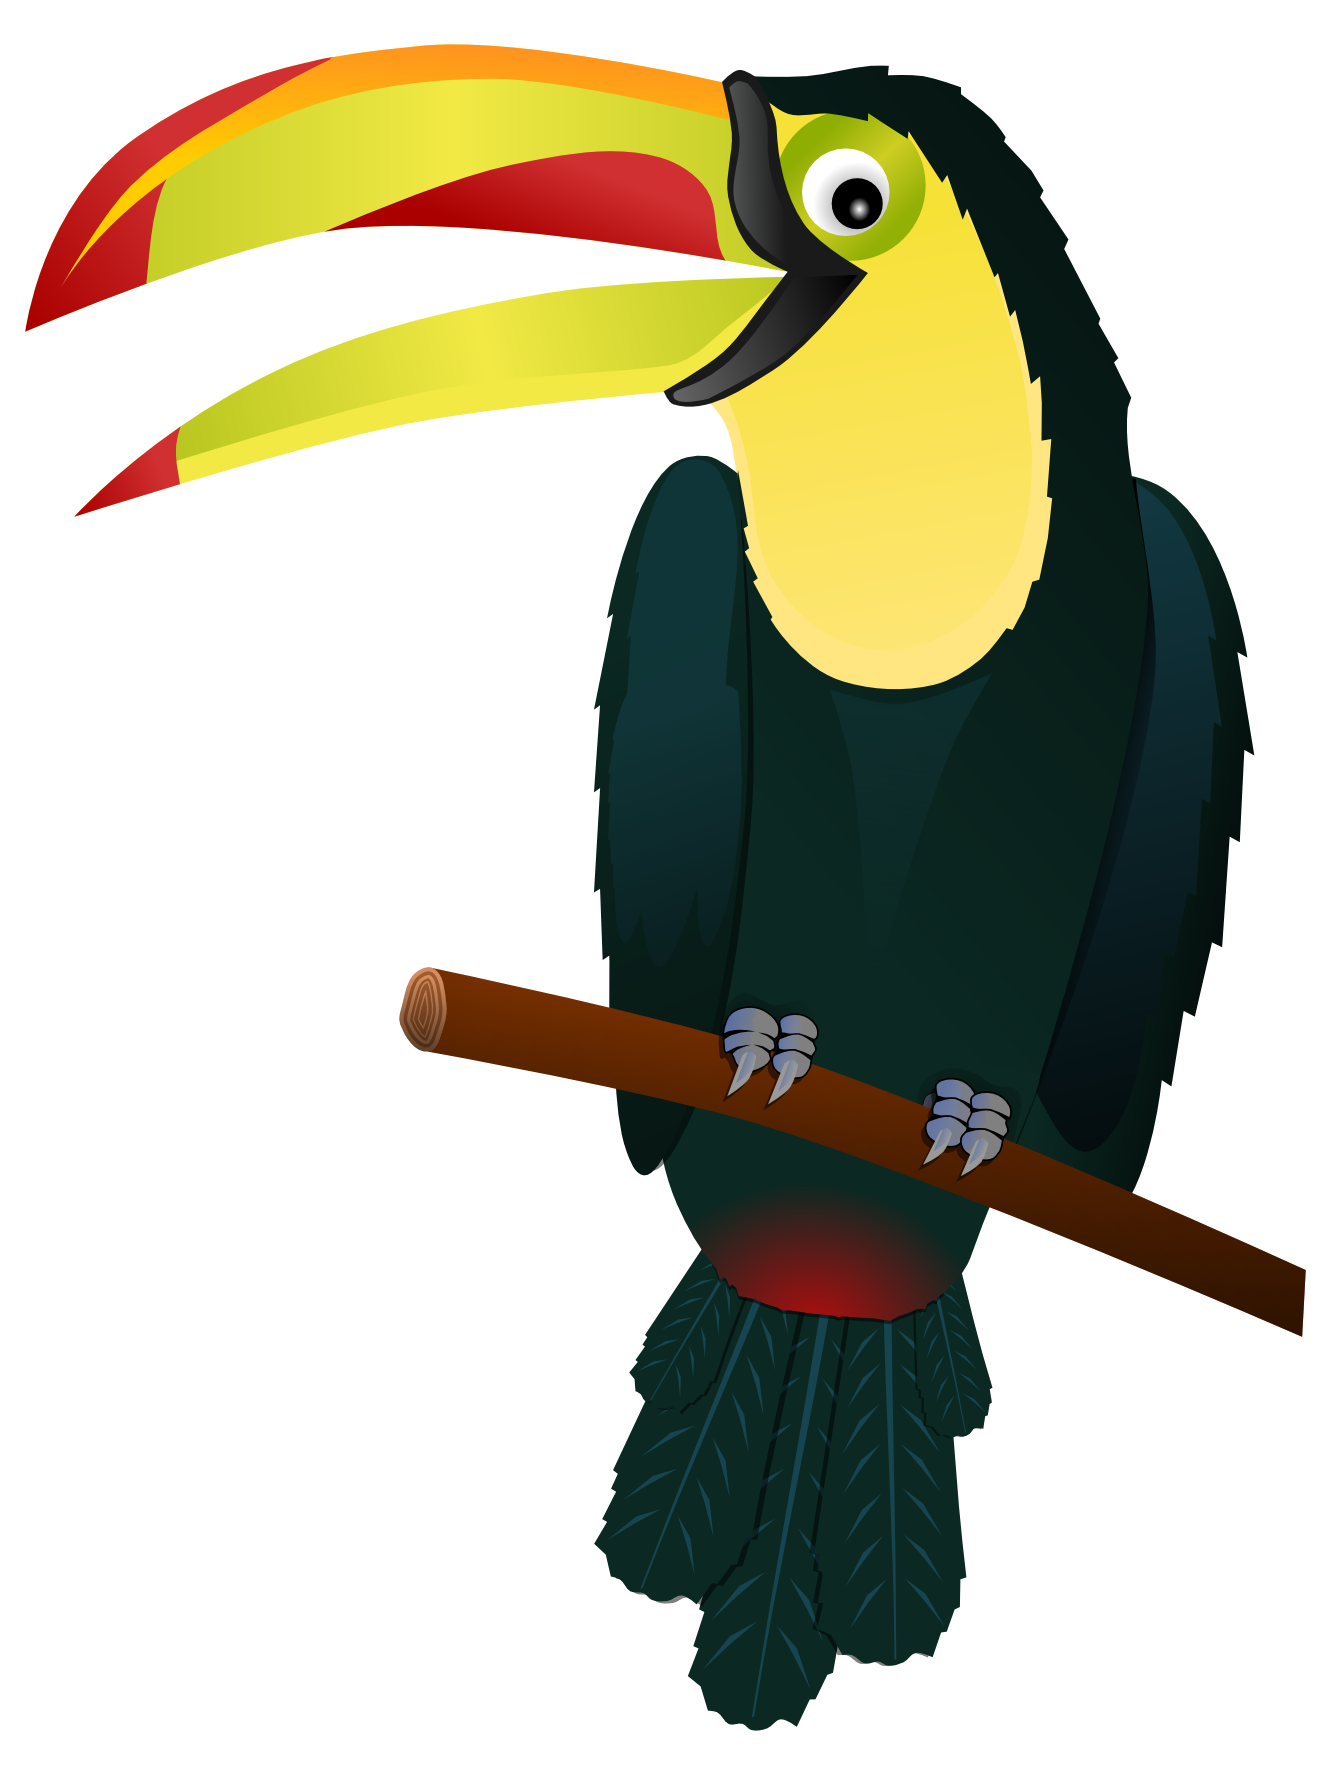 Toucan Clipart Black And White | Clipart Panda - Free Clipart Images